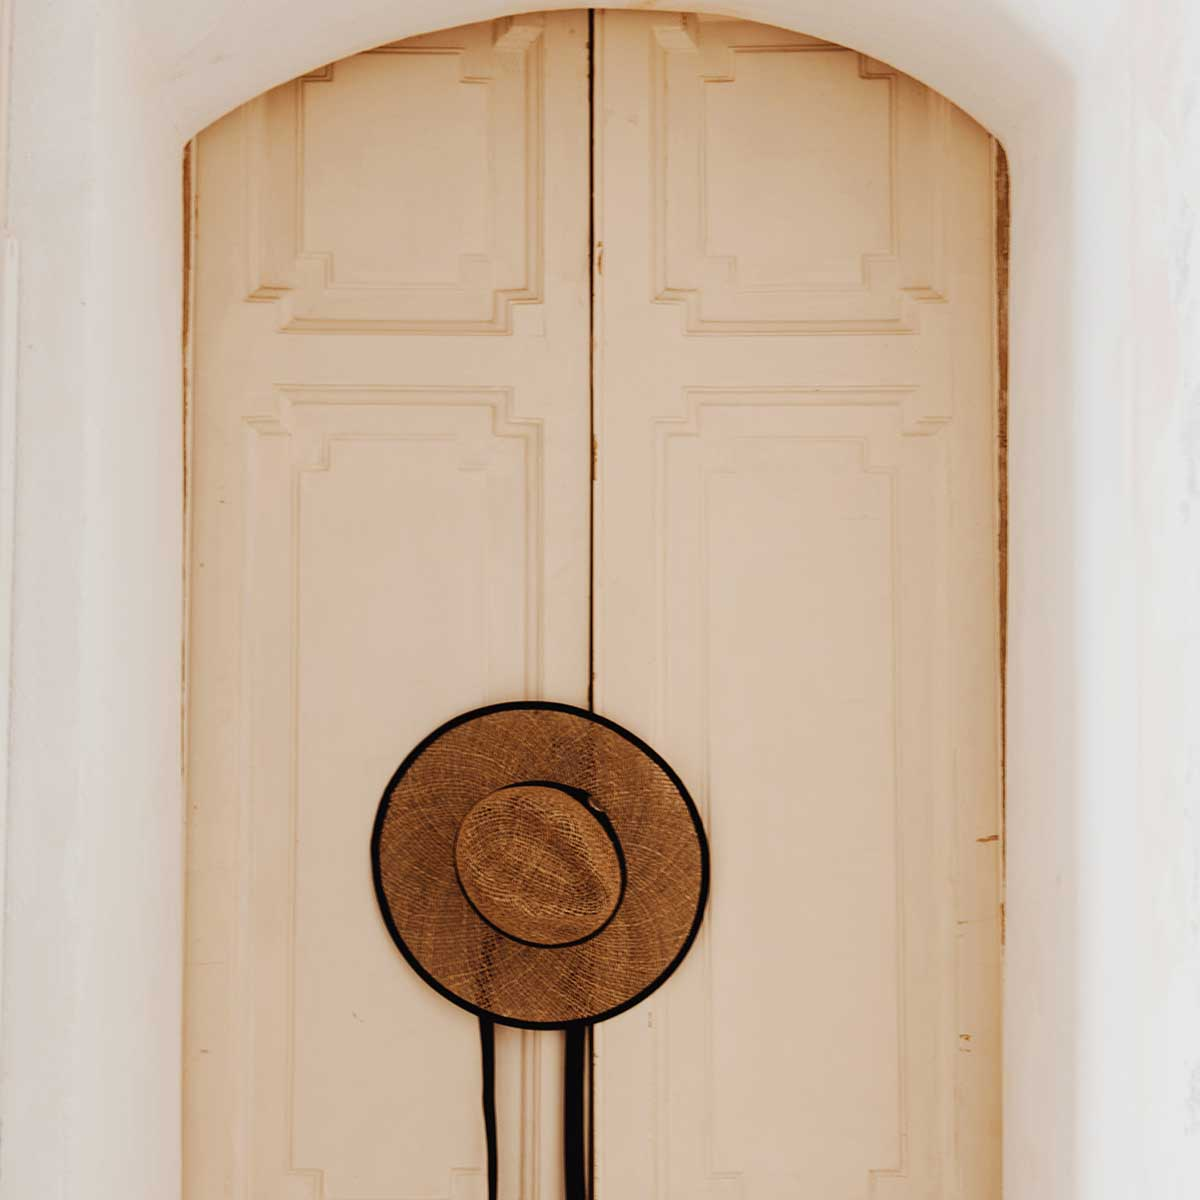 painted raised panel double door set behind white walls with straw hat hanging on handle